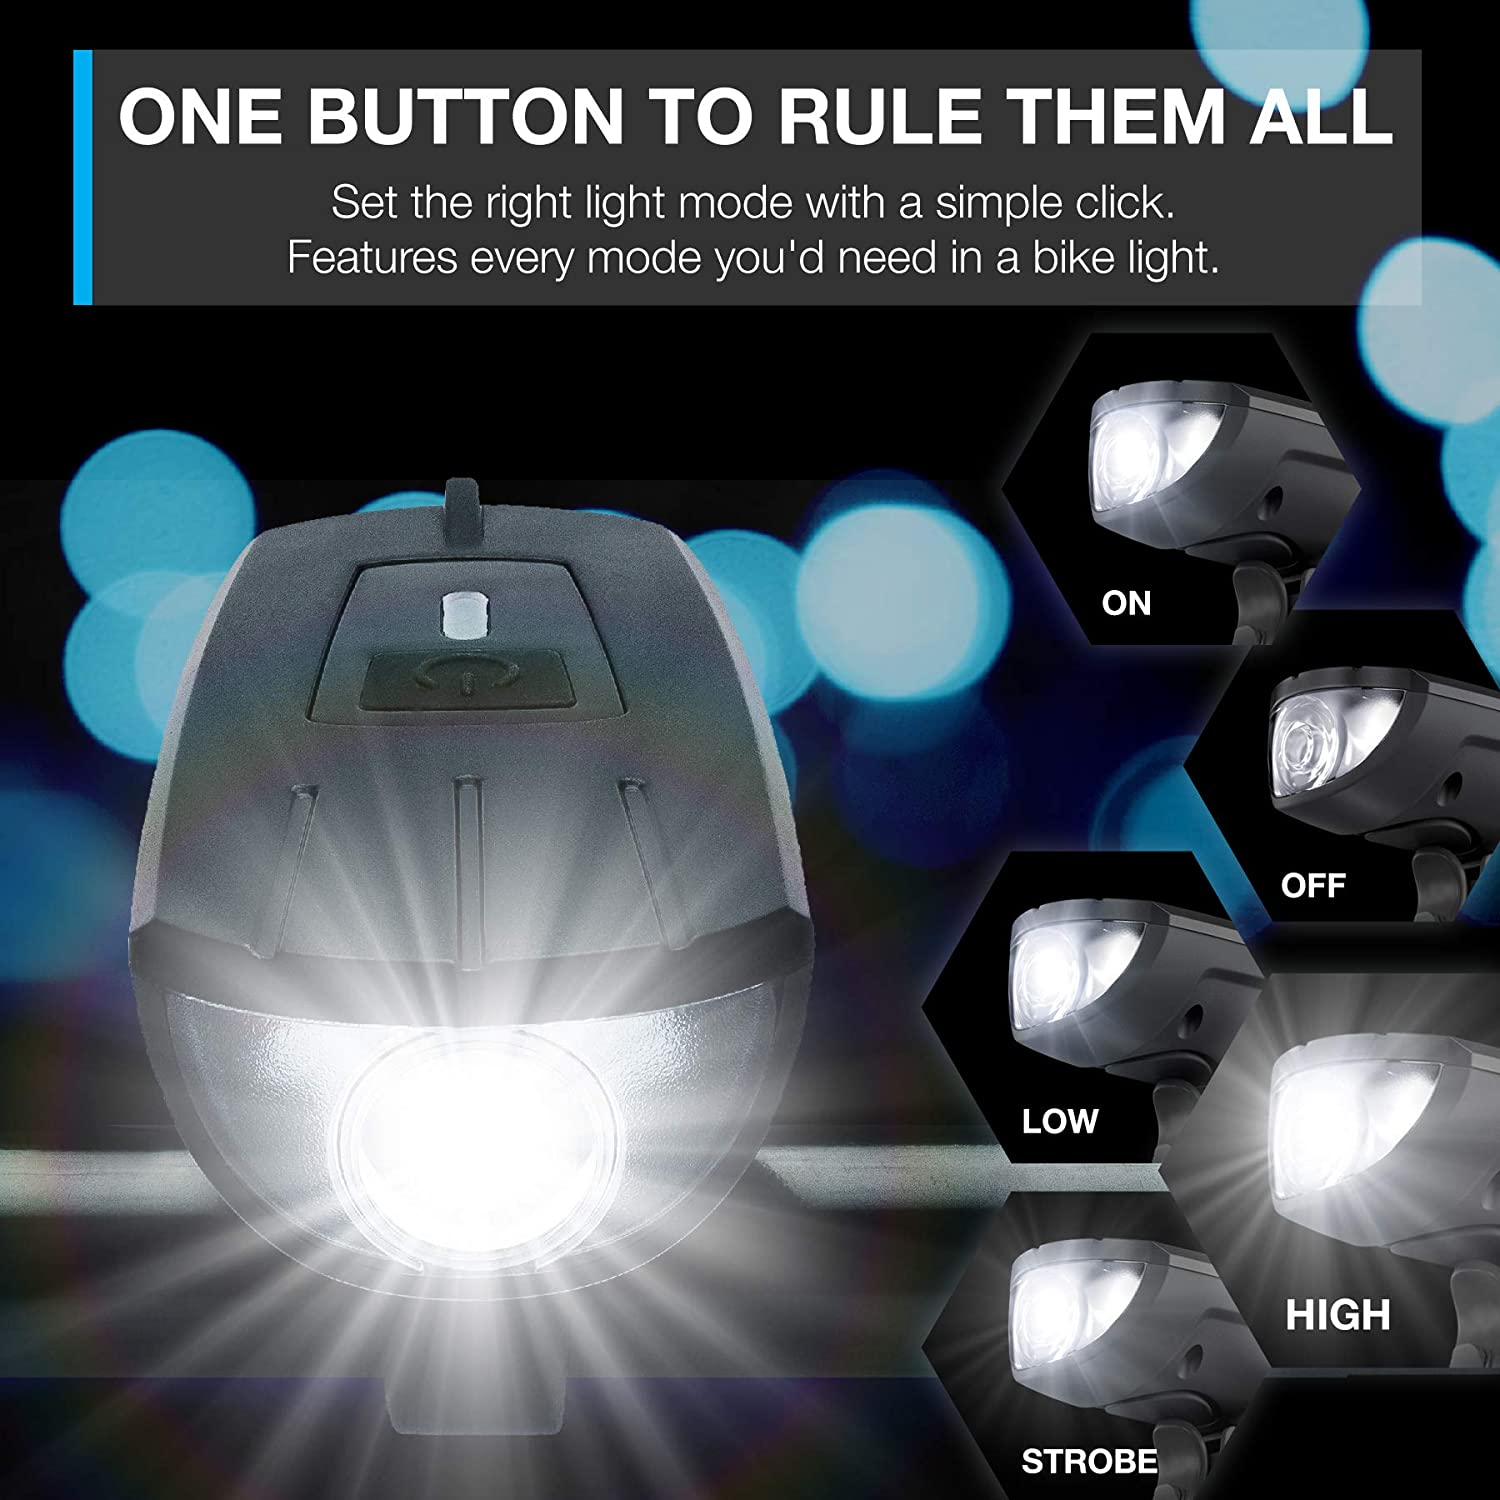 Installs In Seconds Without Tools Vont Bike Light